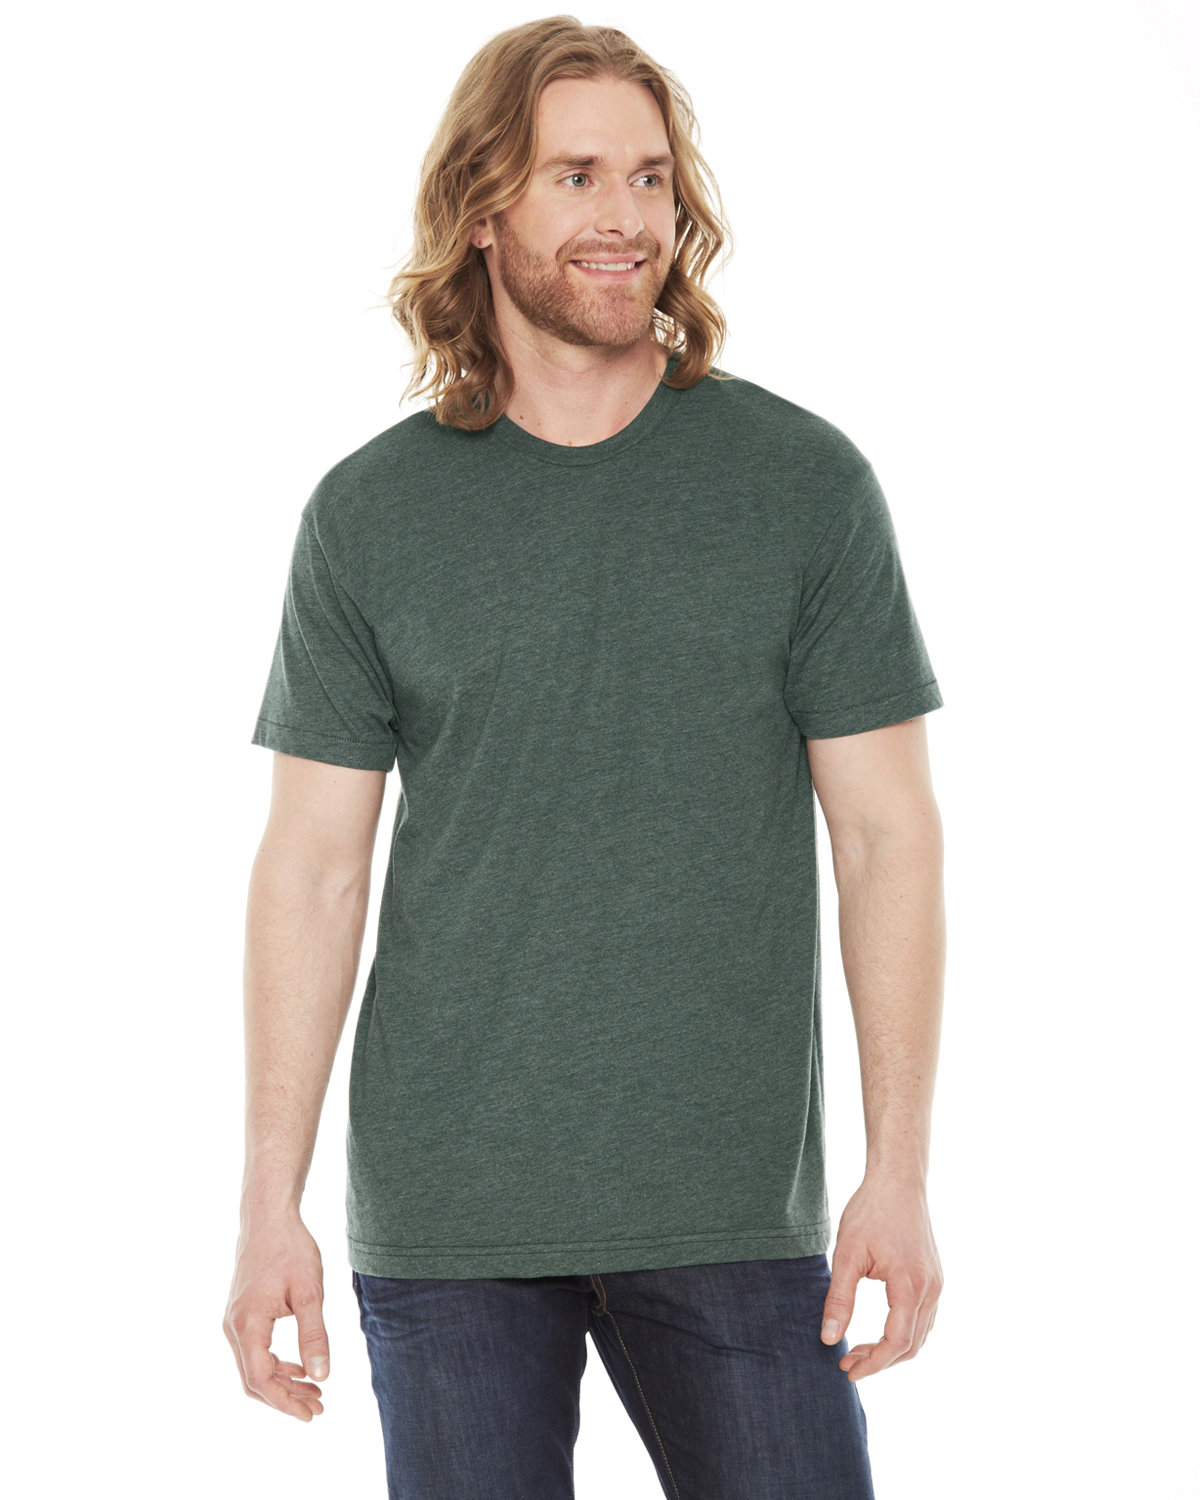 American Apparel Unisex Classic T-Shirt HEATHER FOREST